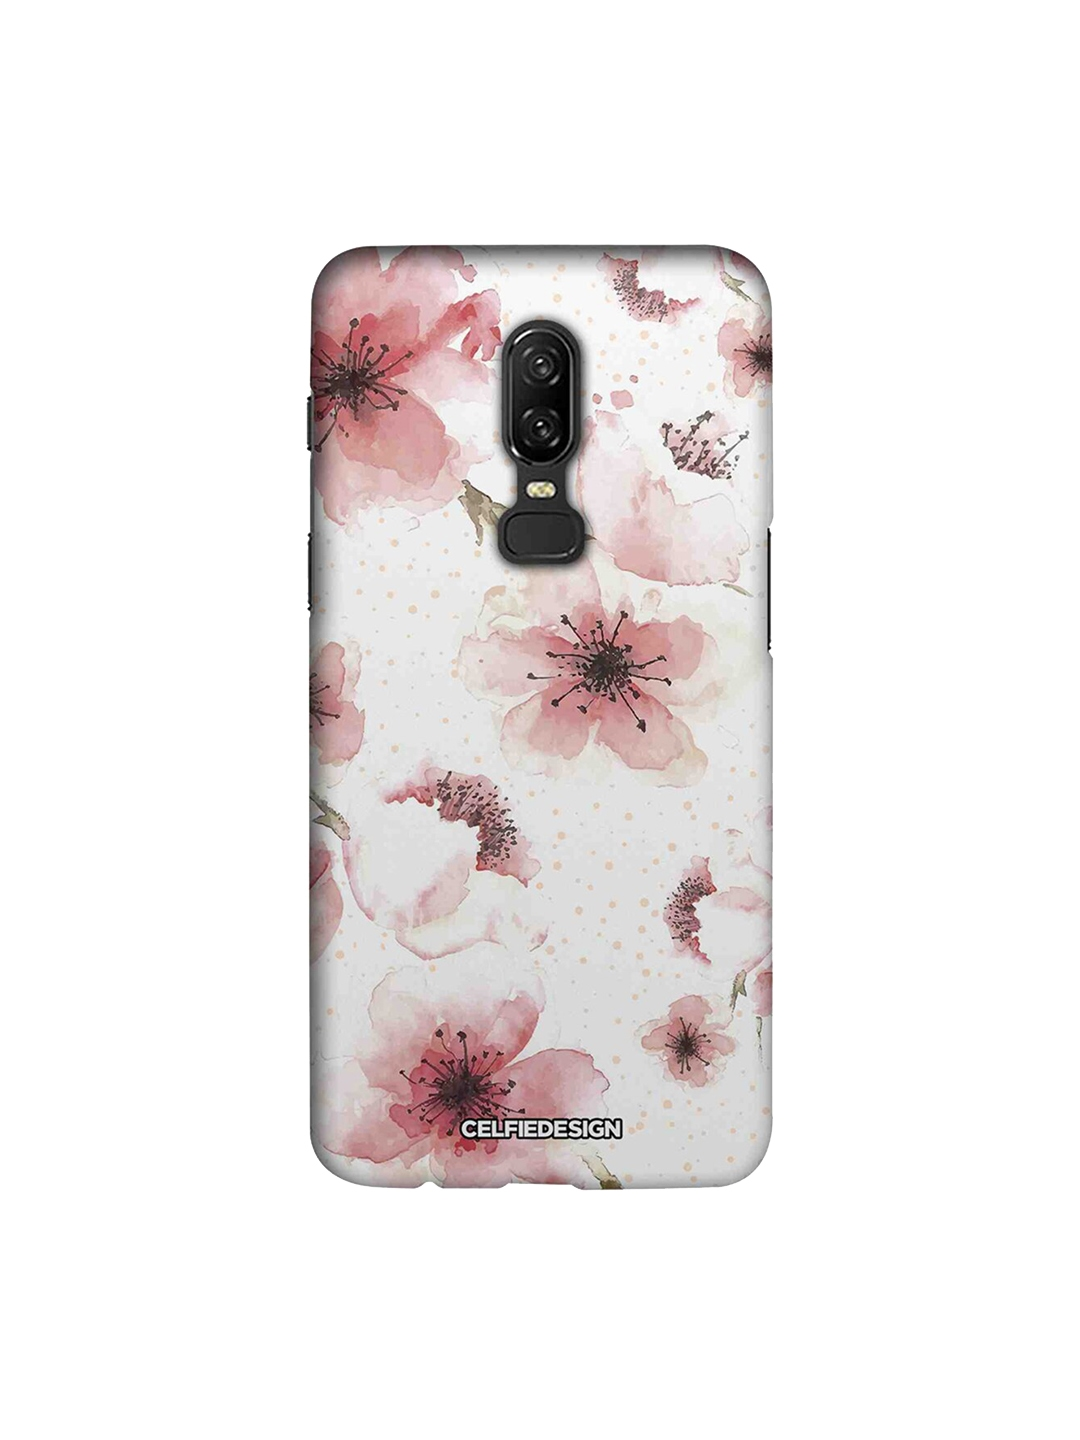 CelfieDesign Unisex White   Peach Floral Printed OnePlus 6 Mobile Sustainable Back Cover